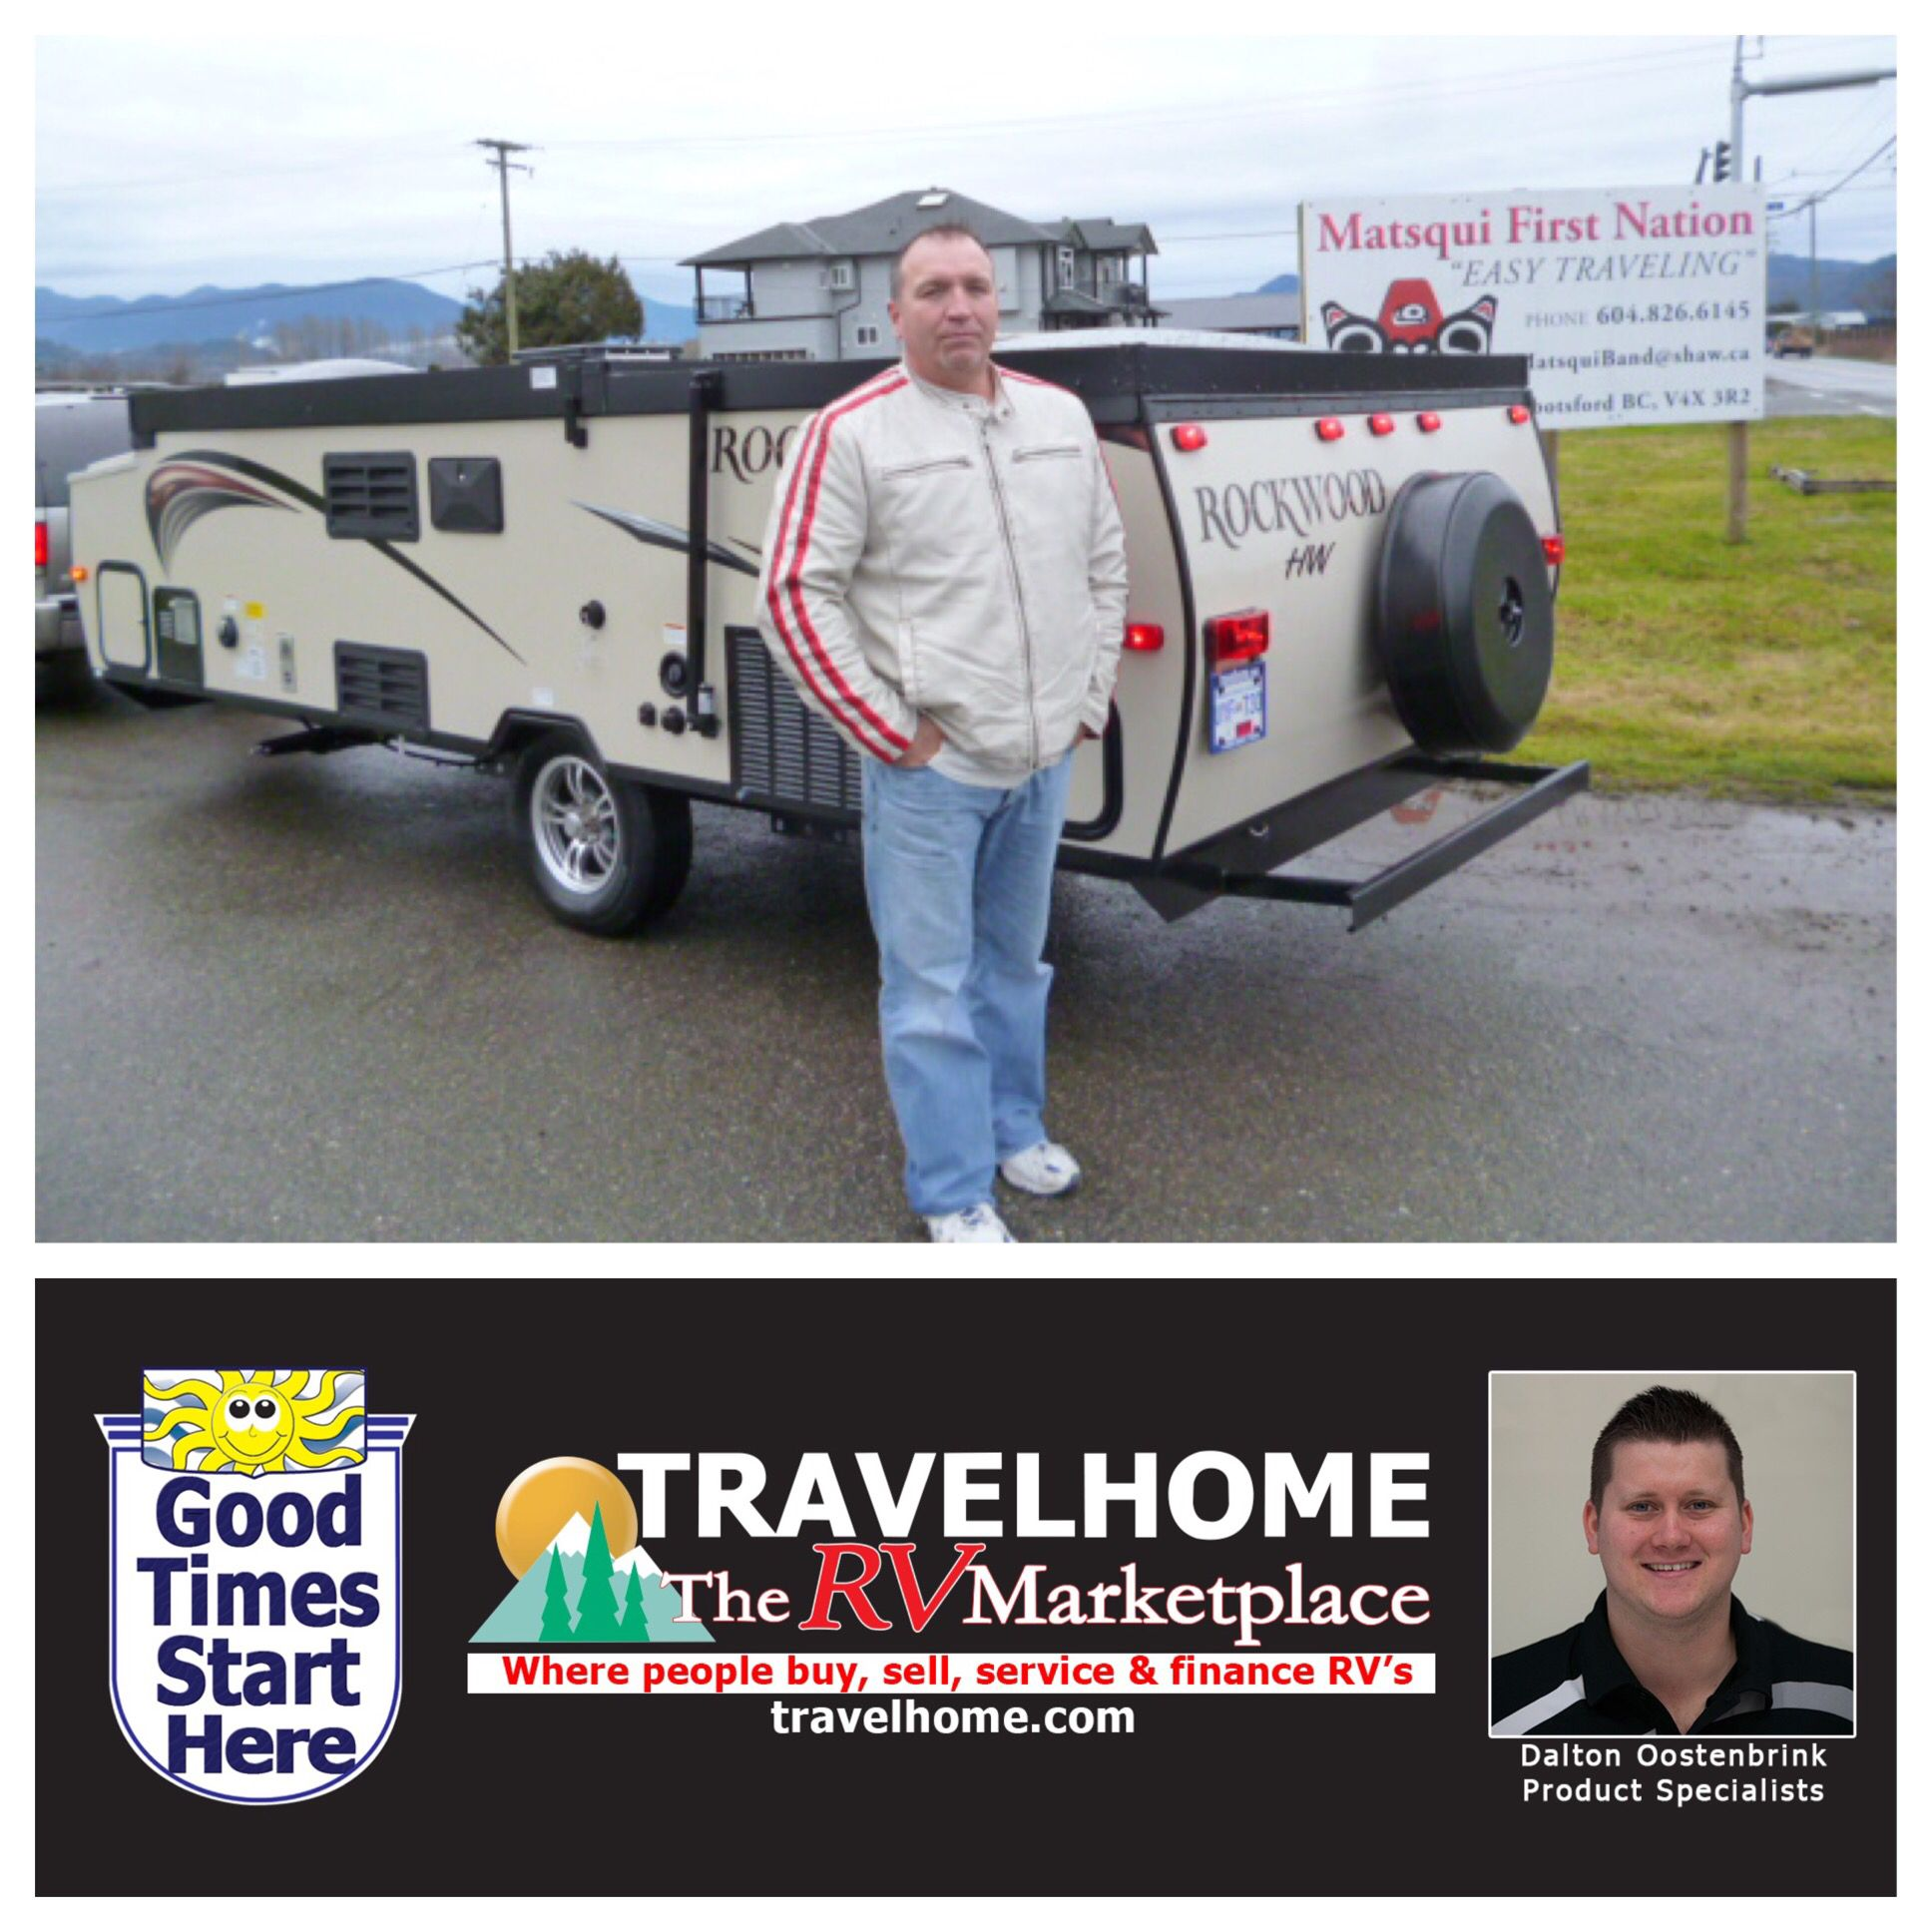 Congratulations to Rick on the purchase of his Rockwood